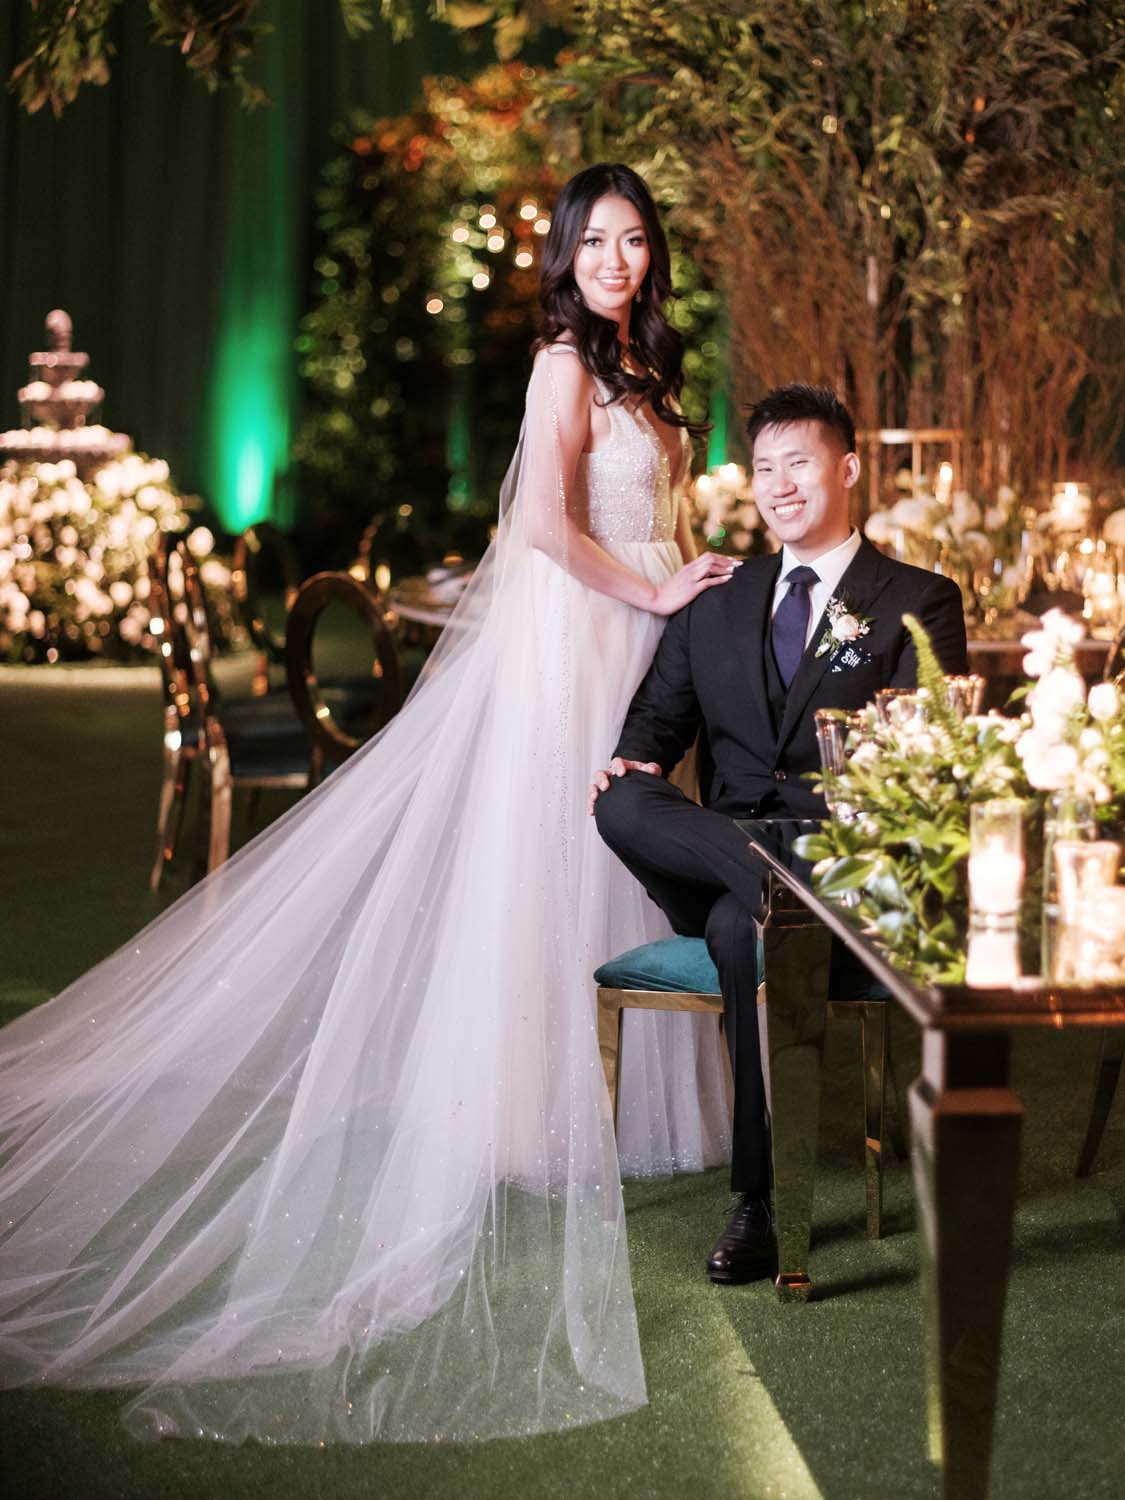 Bride n Erin Cole and Groom in tuxedo in all green city of oz wedding at ARIA Las Vegas. Luxury Las Vegas Wedding Planner Andrea Eppolito. www.andreaeppolitoevents.com. Photo by Rene Zadori.